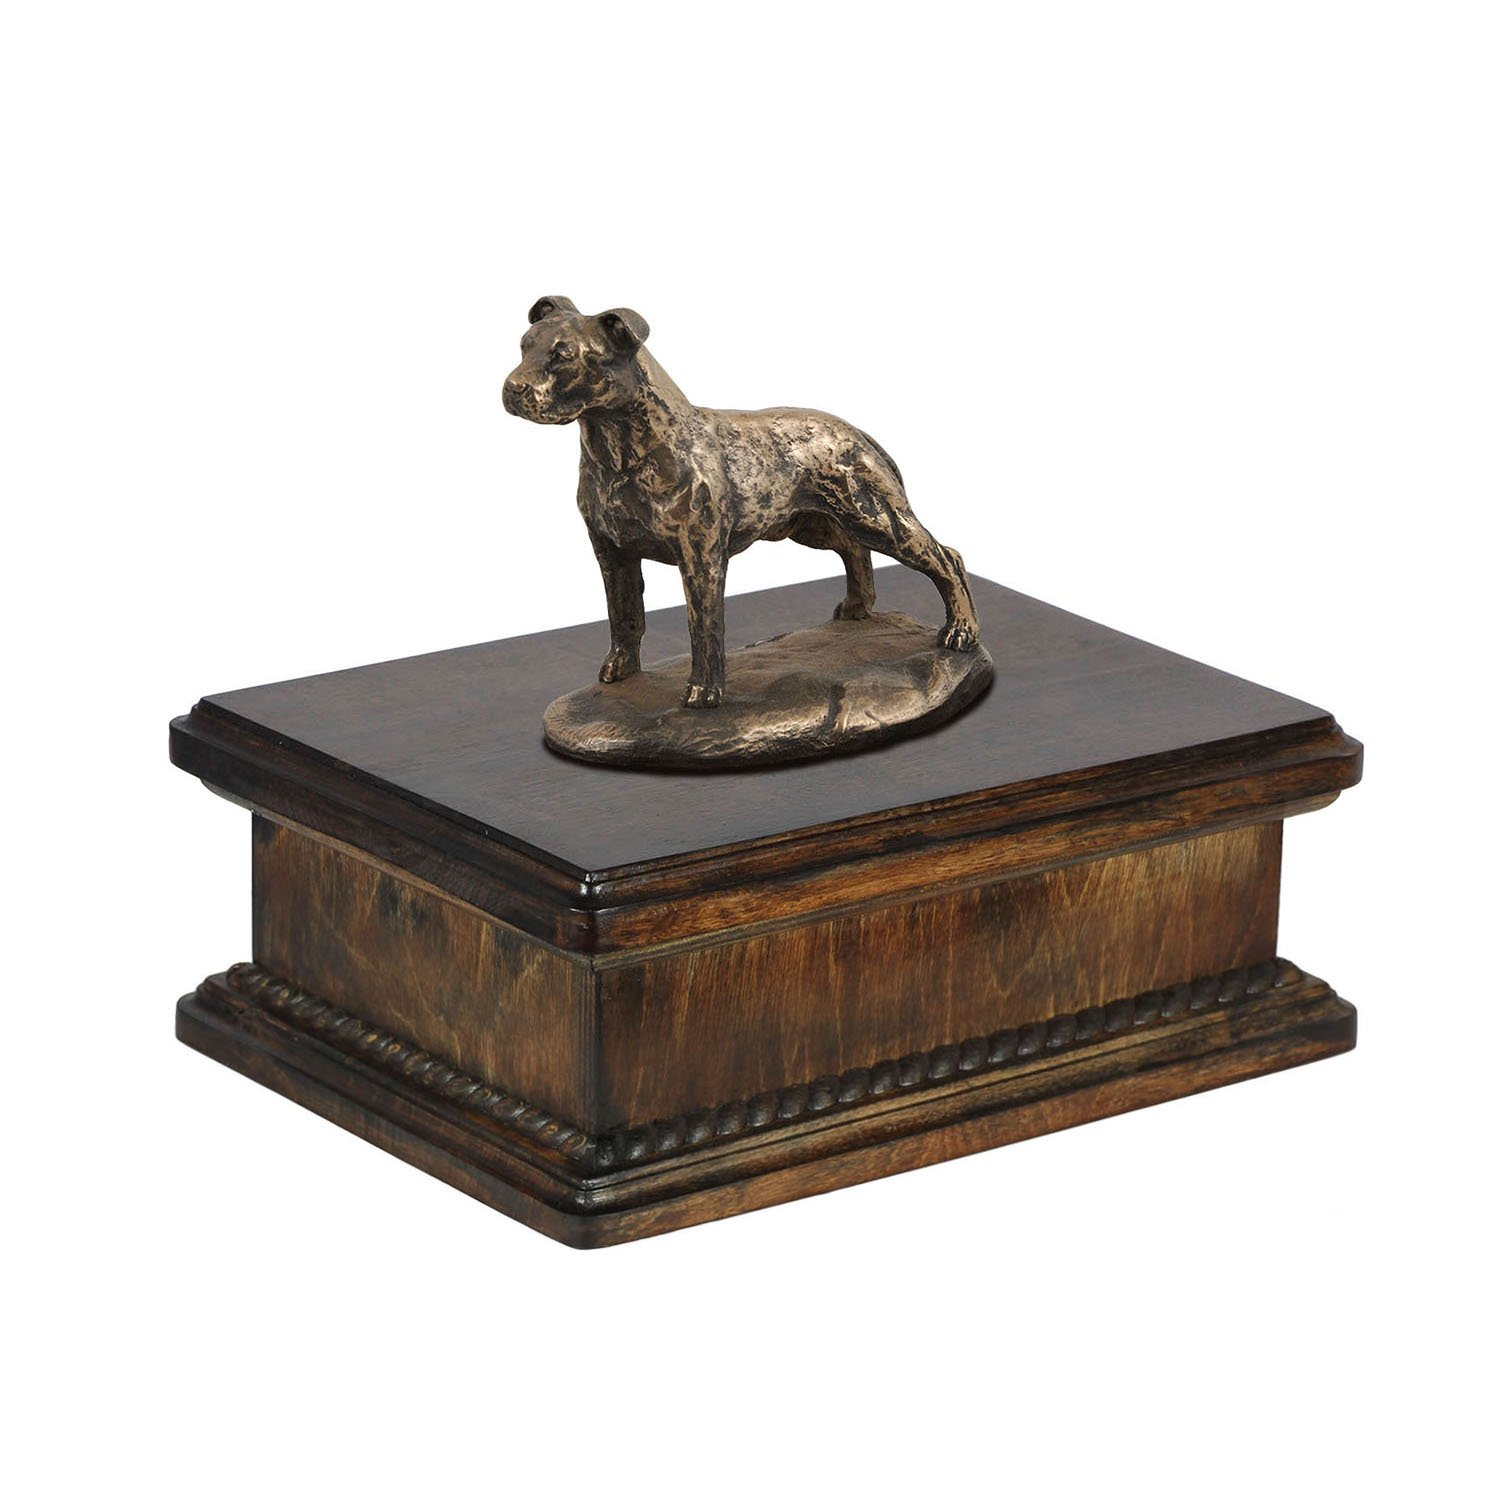 American Staffordshire Terrier (uncropped), memorial, urn for dog's ashes, with dog statue, exclusive, ArtDog